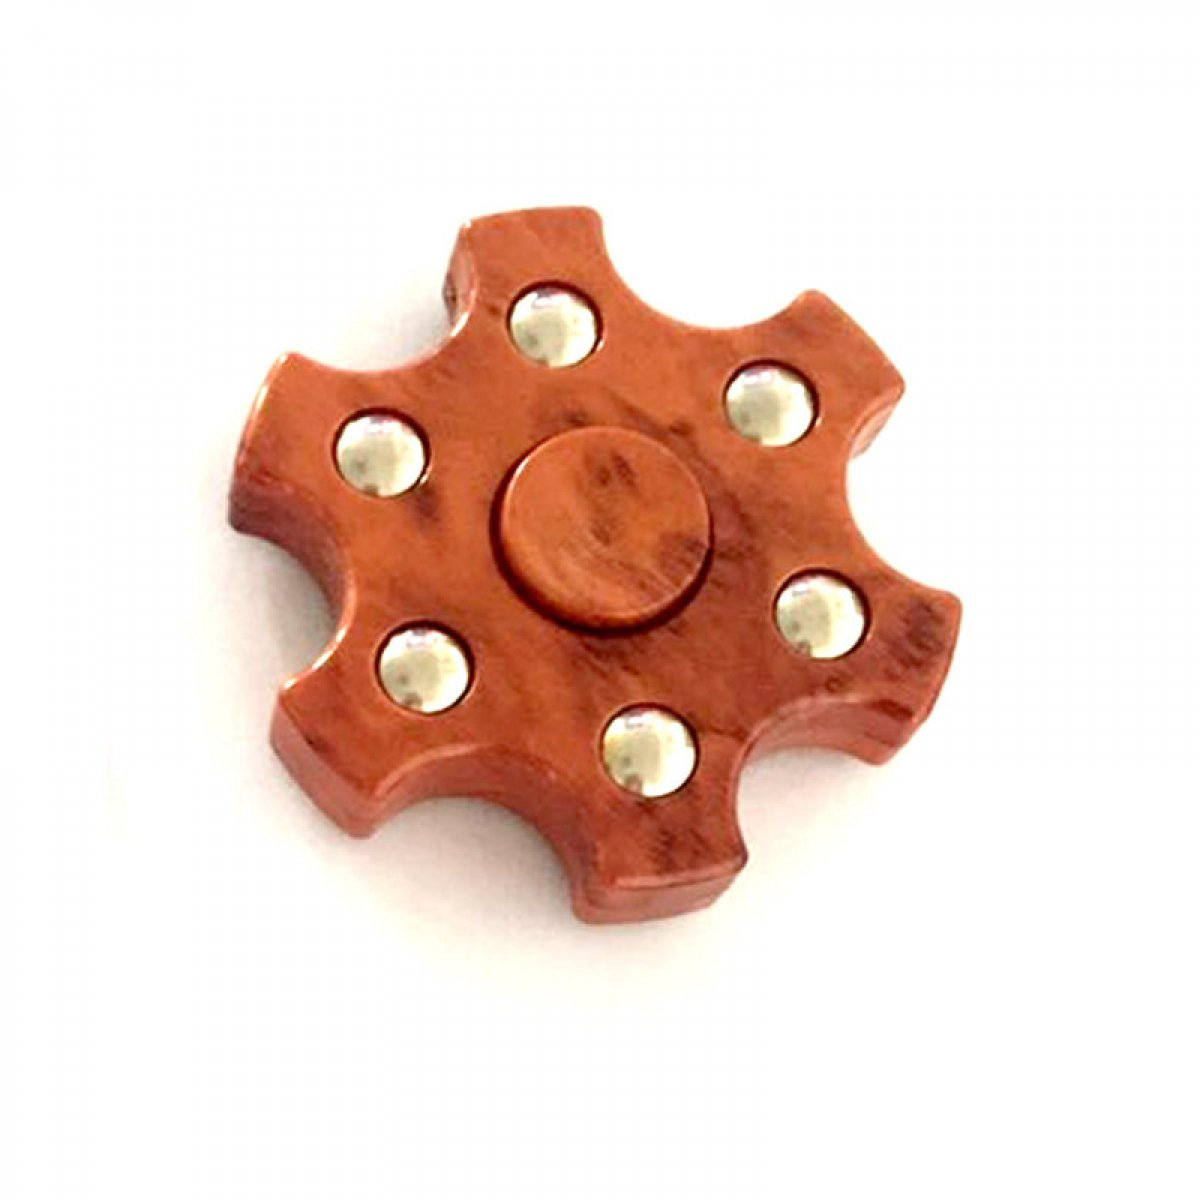 Multi-Shaped &Color Rotating Fidget Hand Spinner Orange